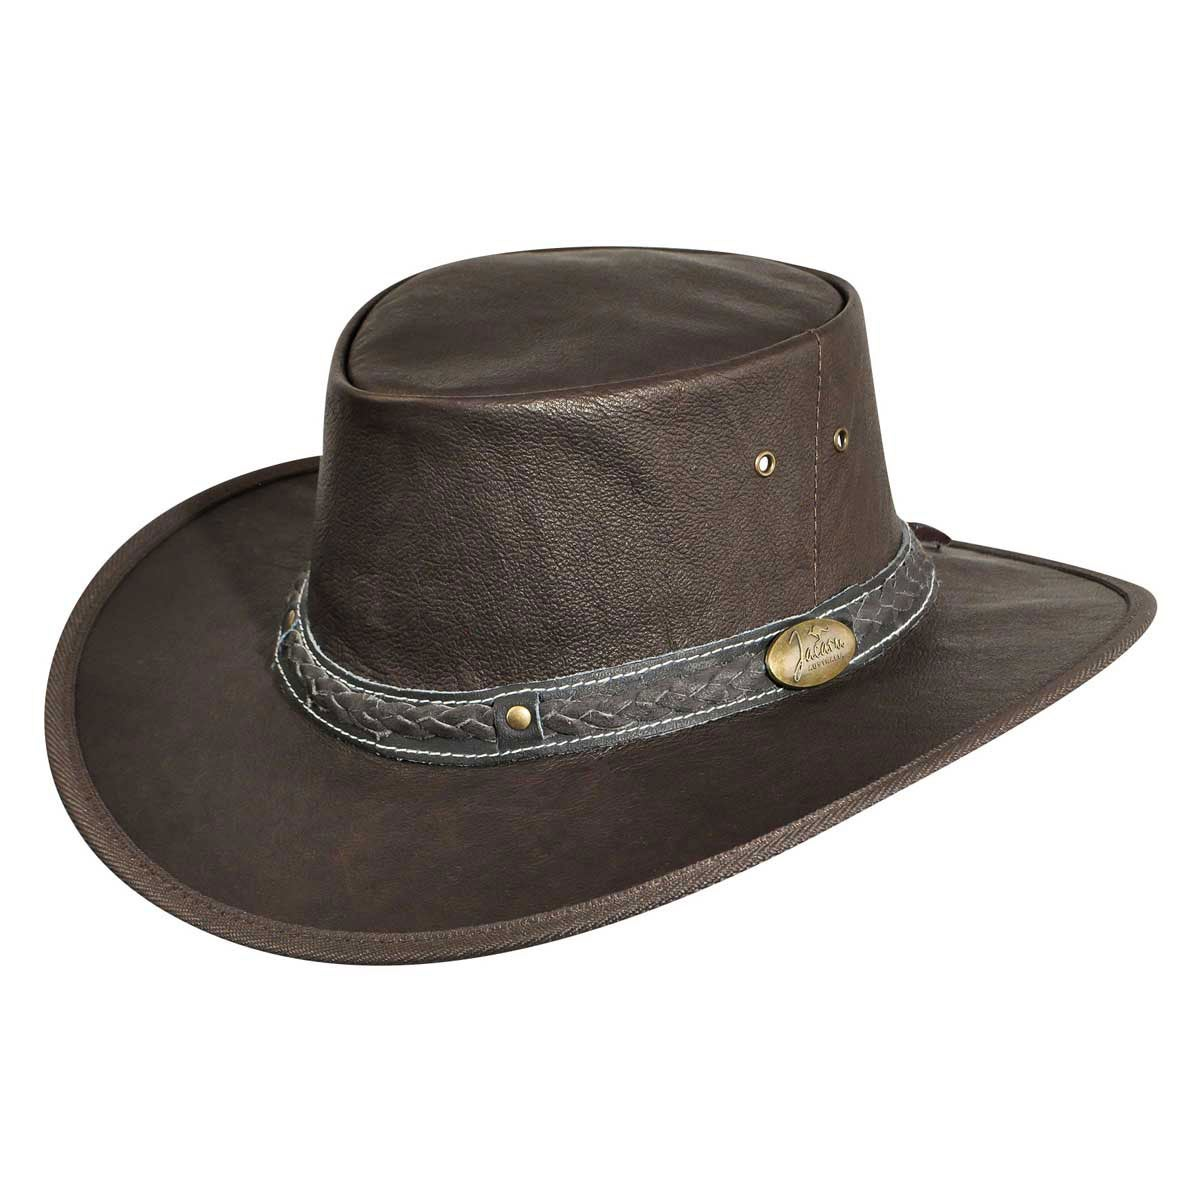 Jacaru Roo Nomad Traveler Outback Hat in Brown